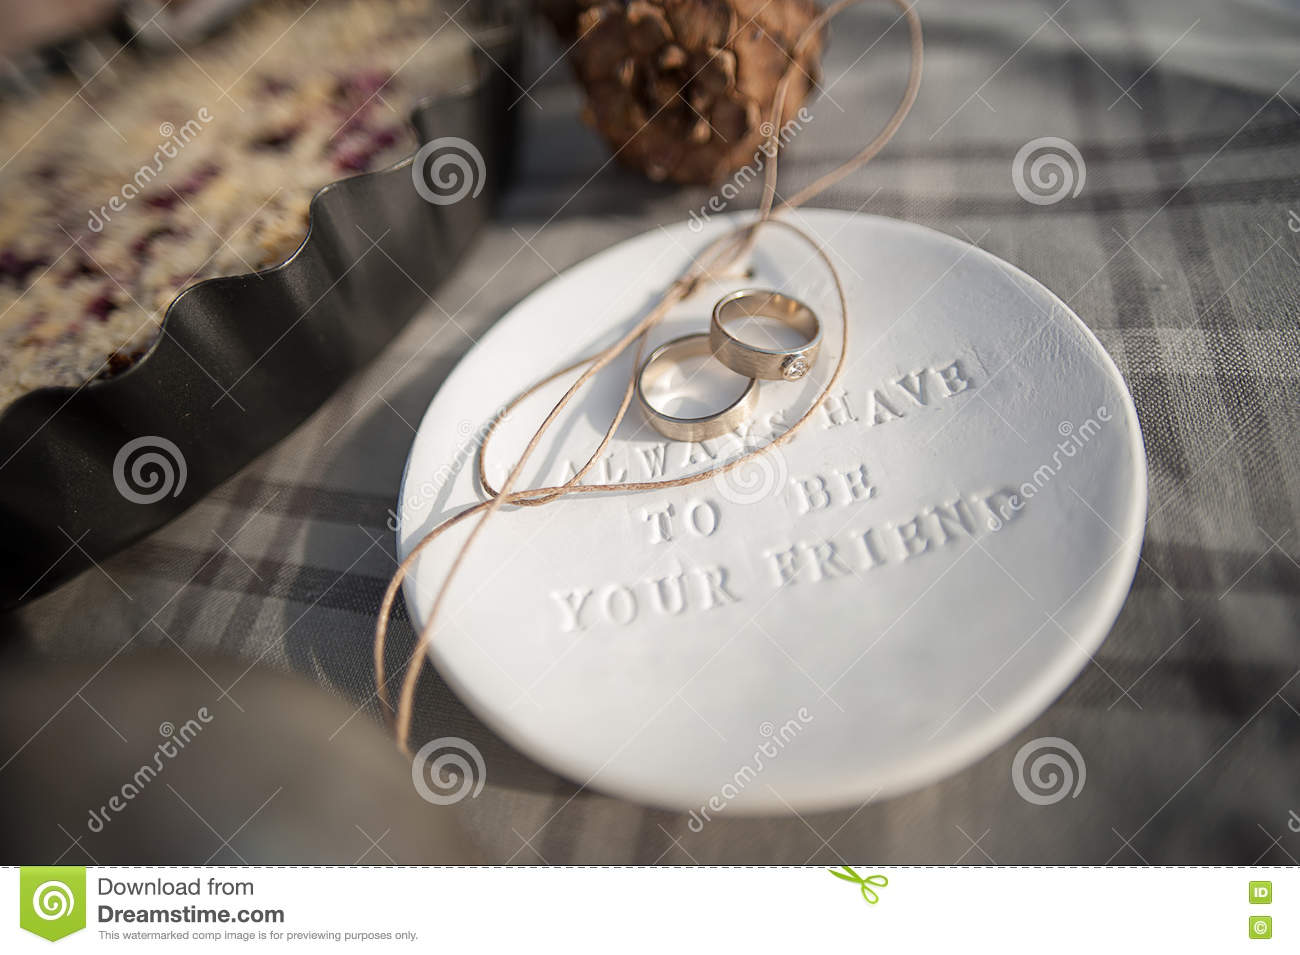 Wedding rings in white gold, clay saucer with the word always have to be your friend